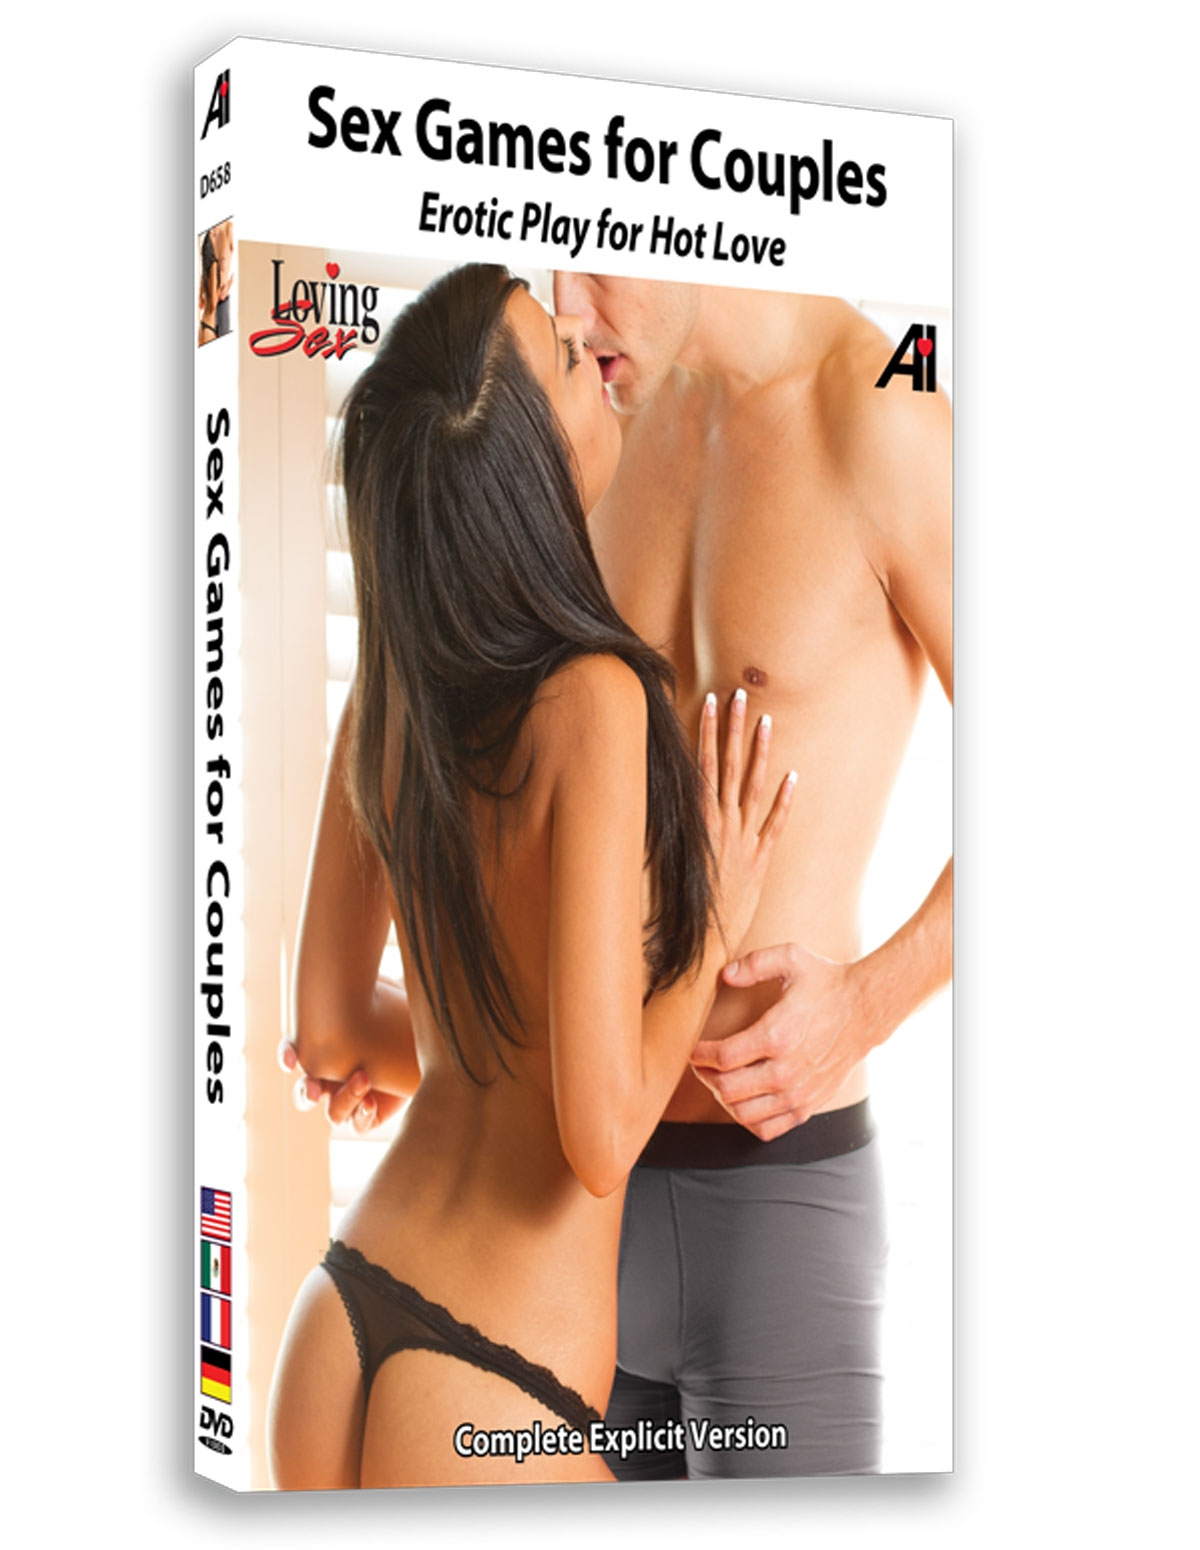 Sex Games For Couples Dvd